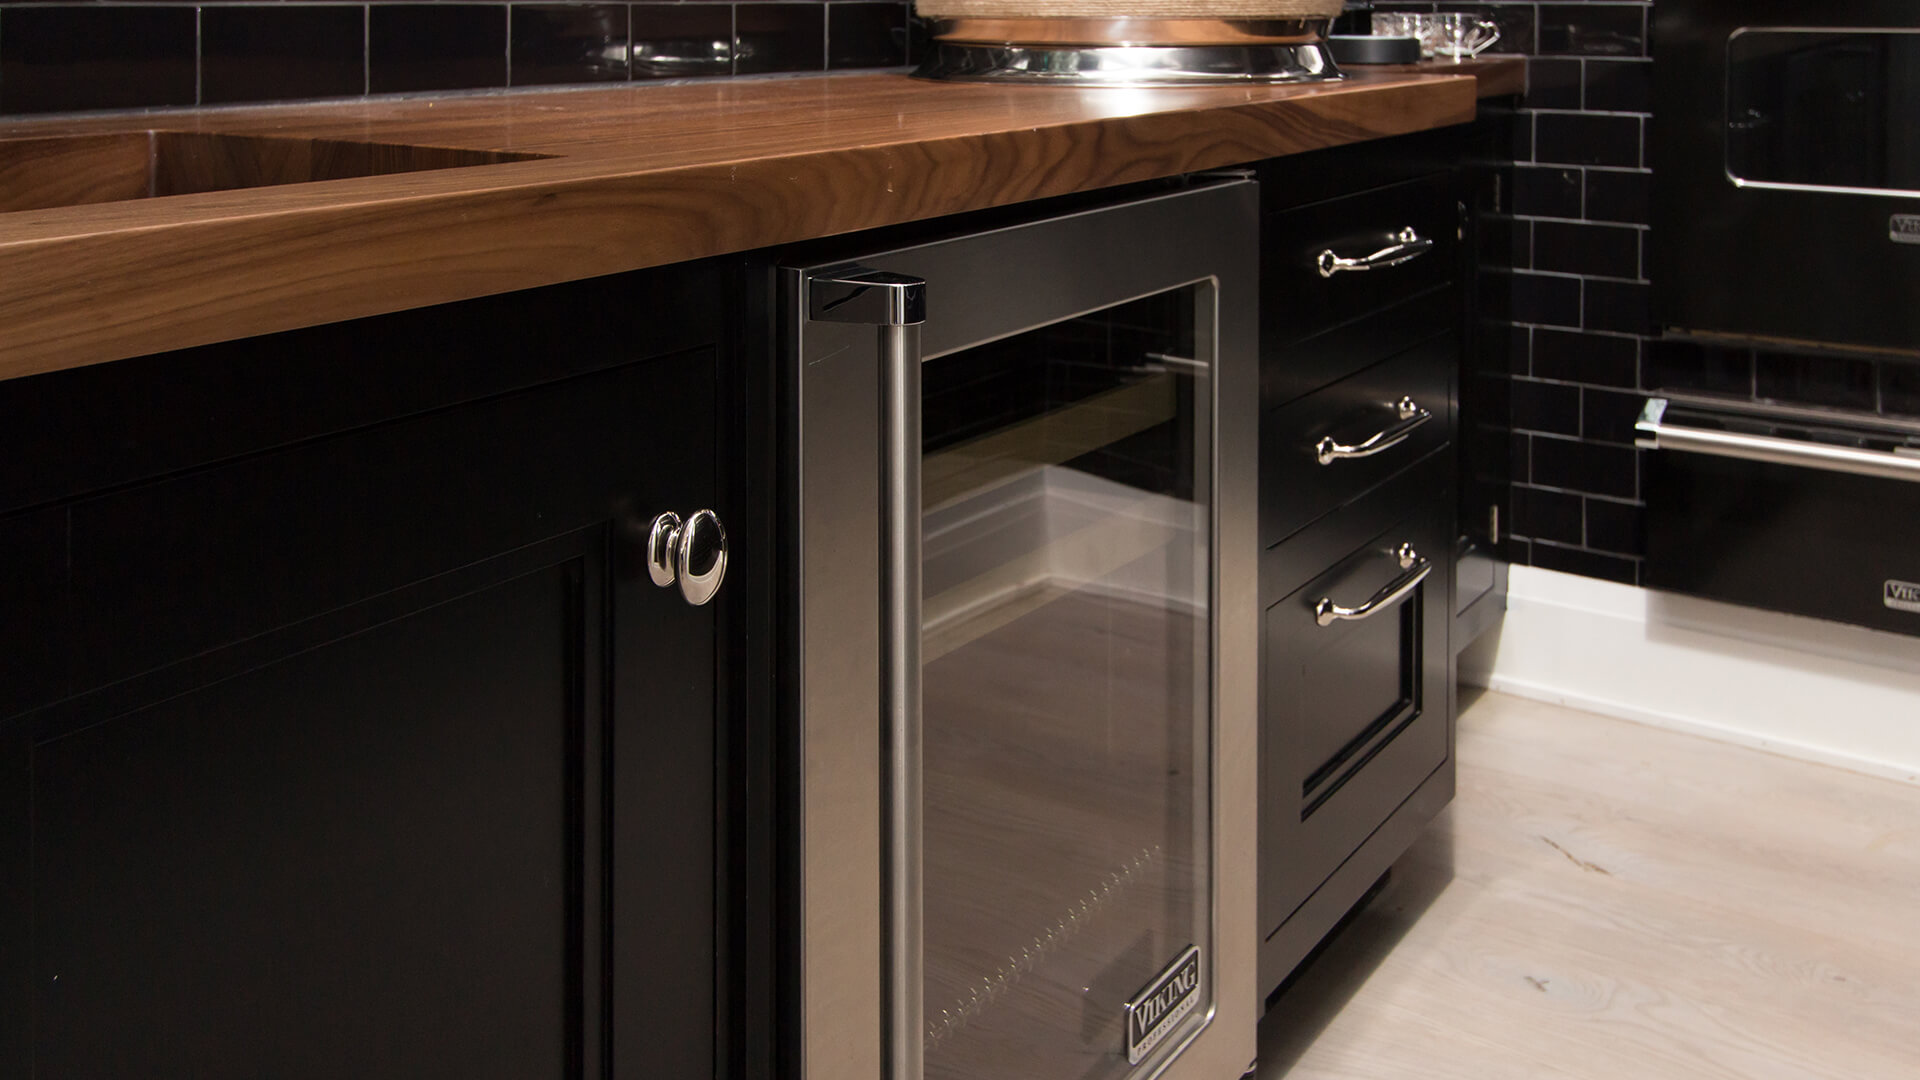 Bakes and Kropp Custom cabinetry with high gloss black cabinetry and custom wine chiller